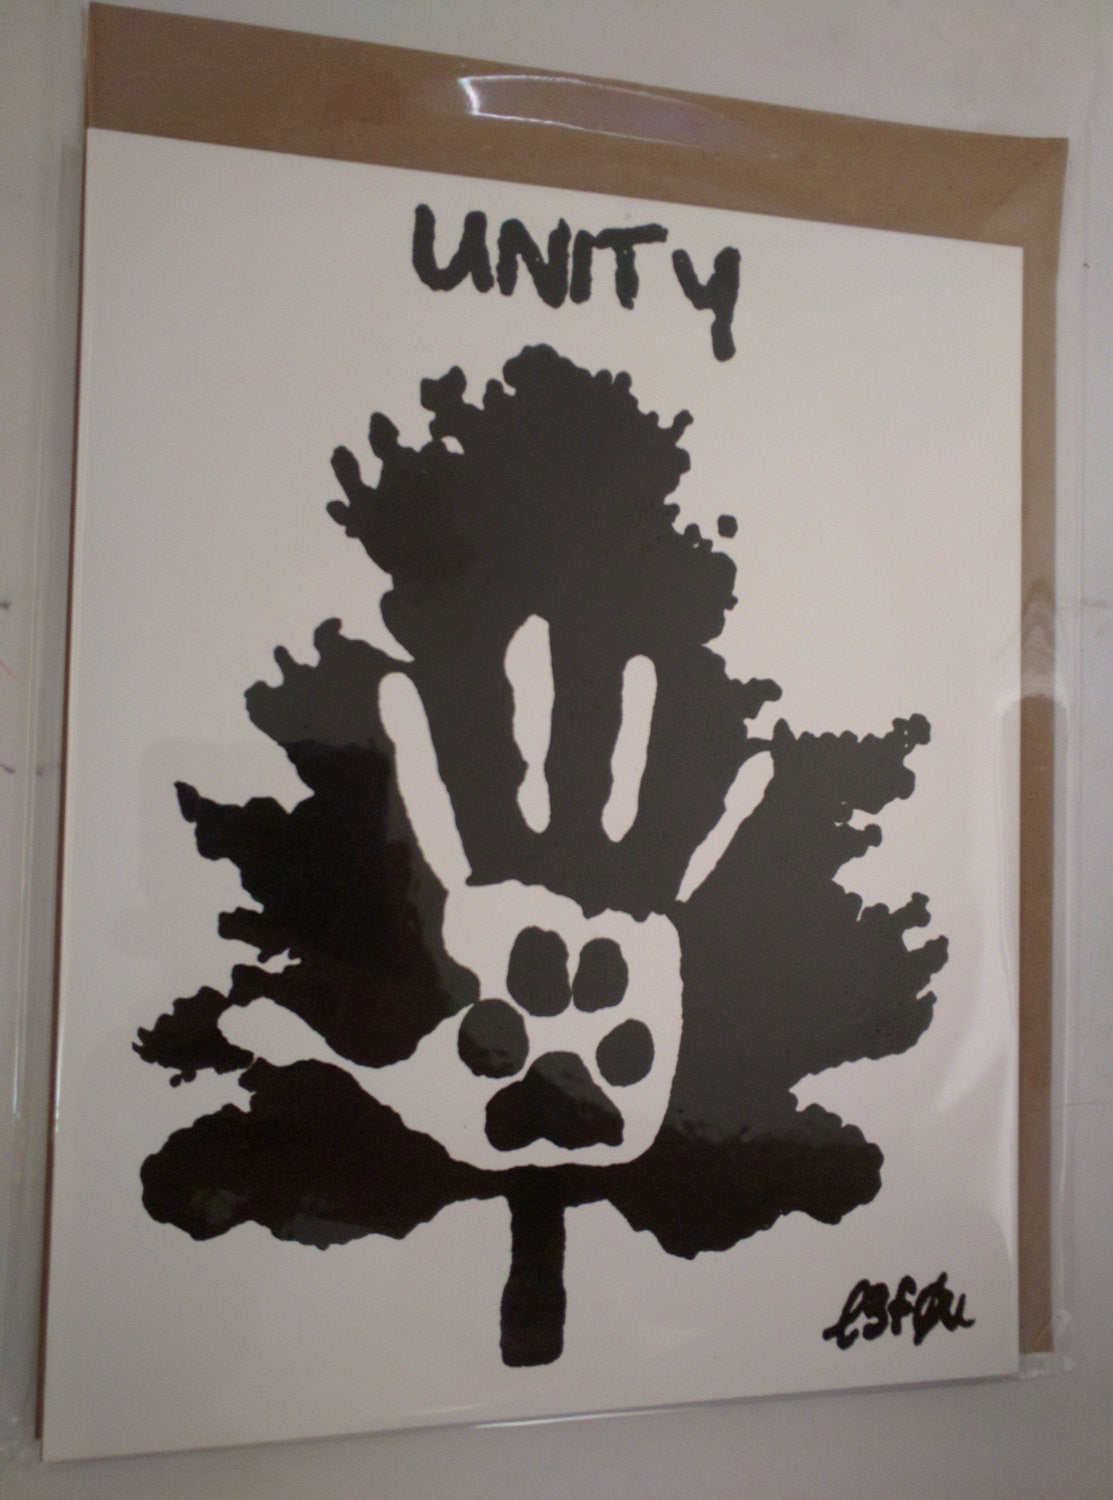 "Limited Edition of 150 10x10 on Gessobord of Artwork ""Unity"" (the movie) from Shaun Monson Signed L3f0u"